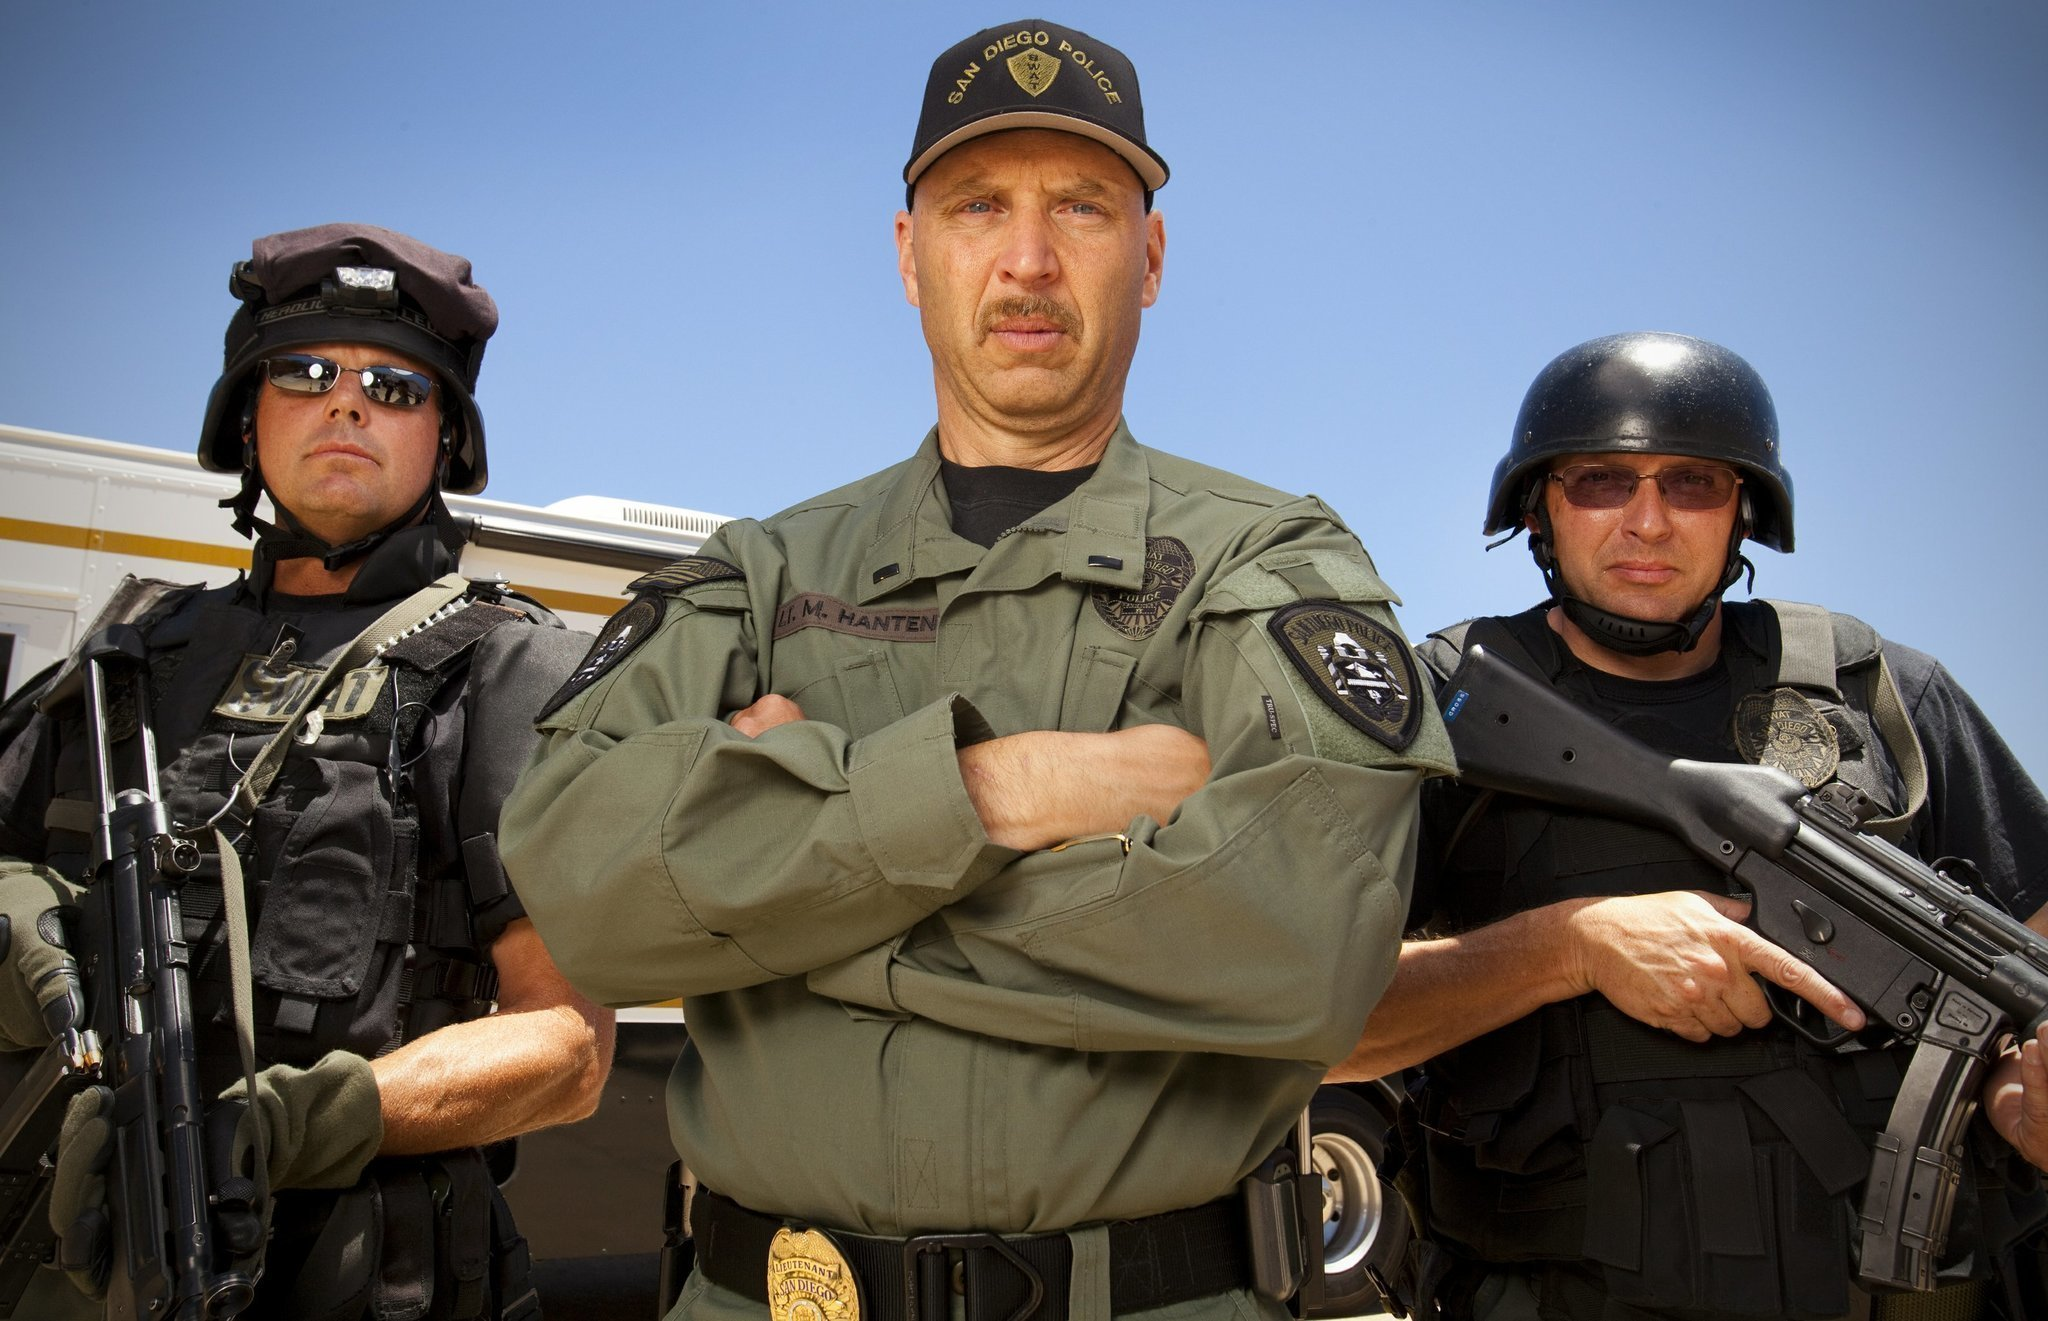 swat research papers Definition of swat teams research categories swat is among a number of names given to such units by federal and local agencies.